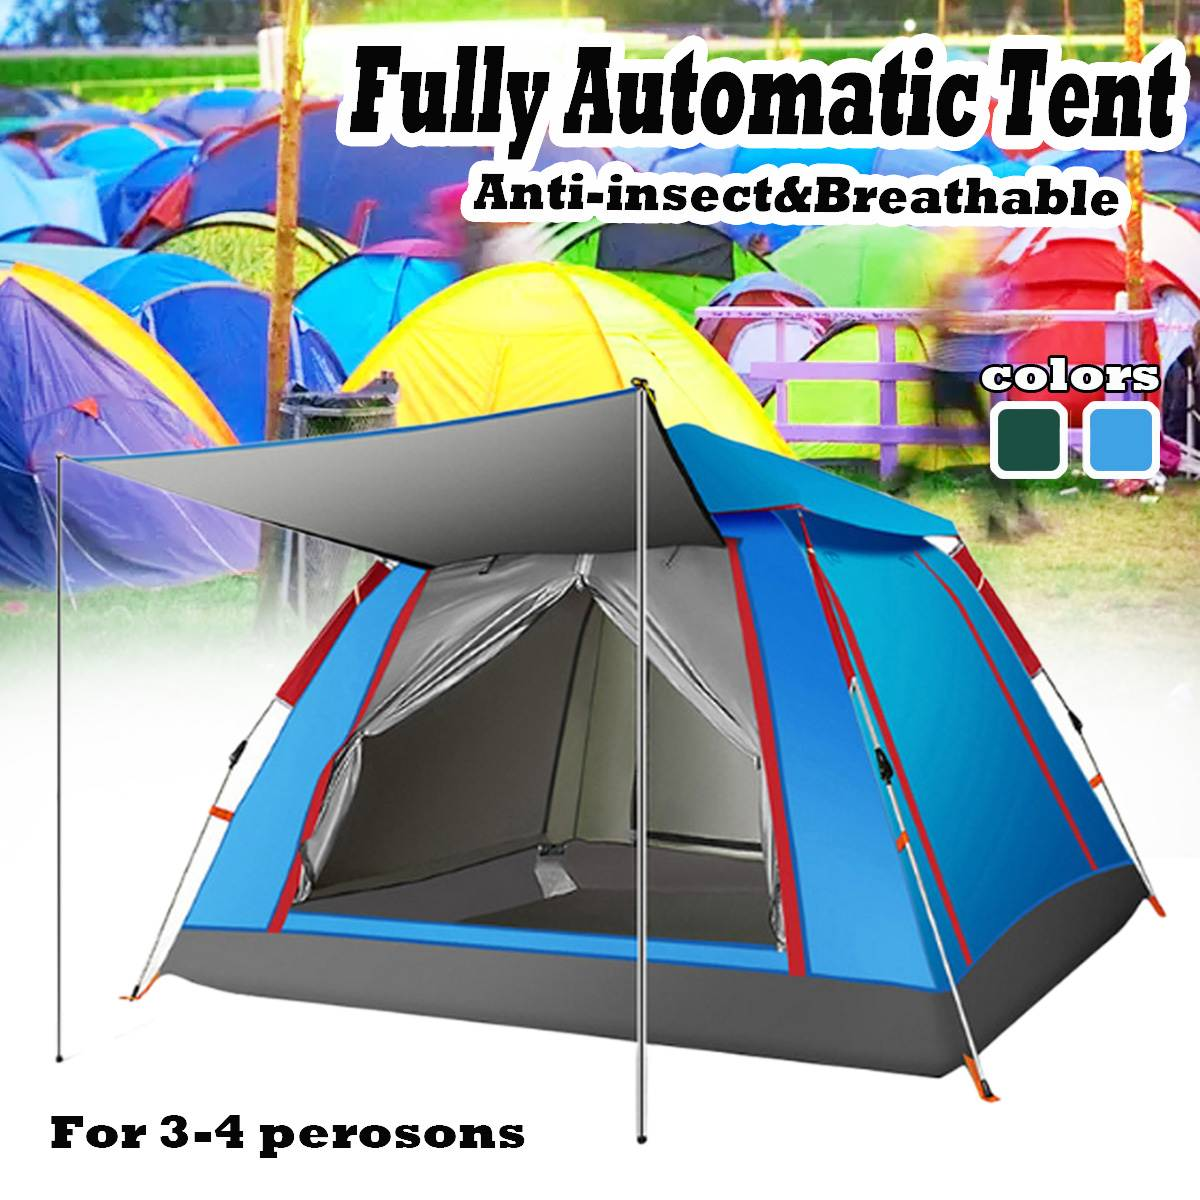 3-4 Person Tourist Tent popup Camping Tents Outdoor Camping Beach Open Tent Waterproof Tents Large Automatic ultralight family3-4 Person Tourist Tent popup Camping Tents Outdoor Camping Beach Open Tent Waterproof Tents Large Automatic ultralight family